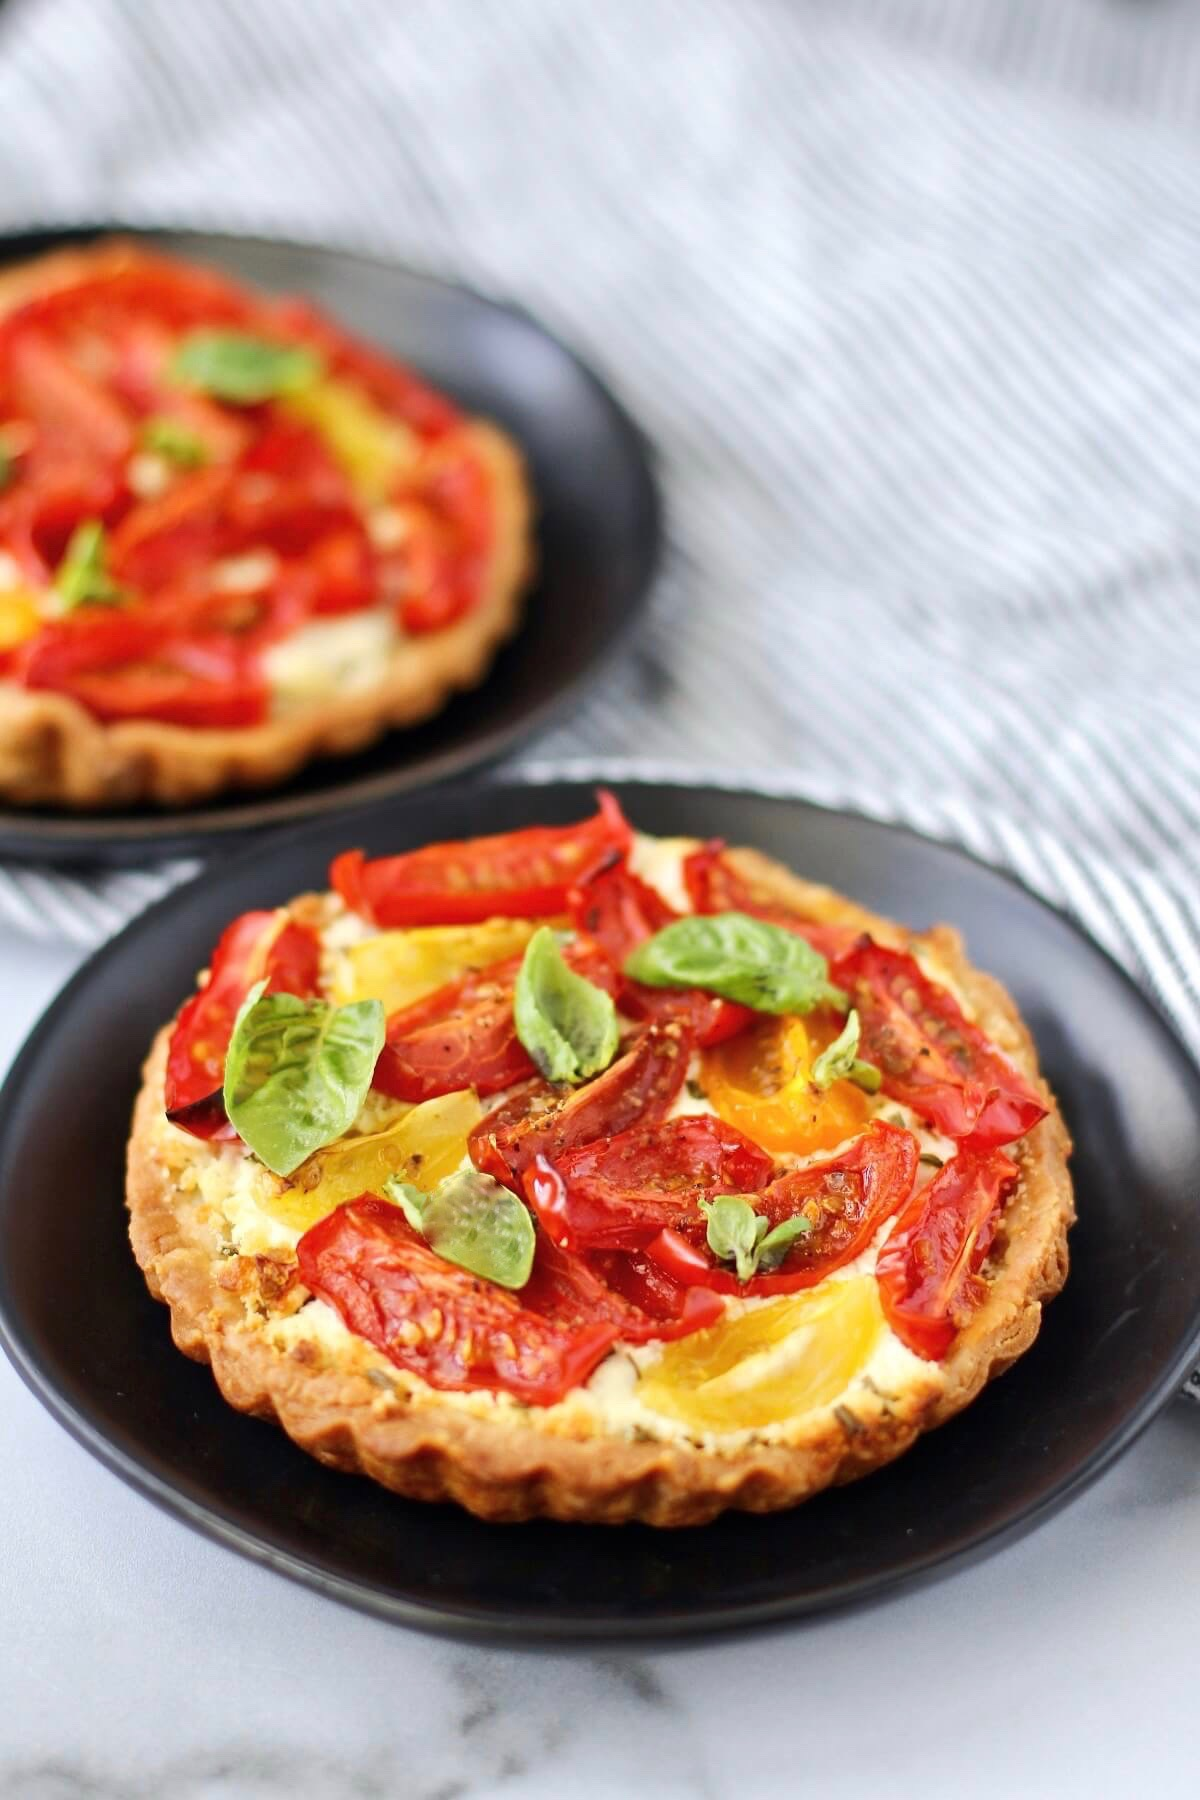 Tomato, basil, and goat cheese tarts on plates.